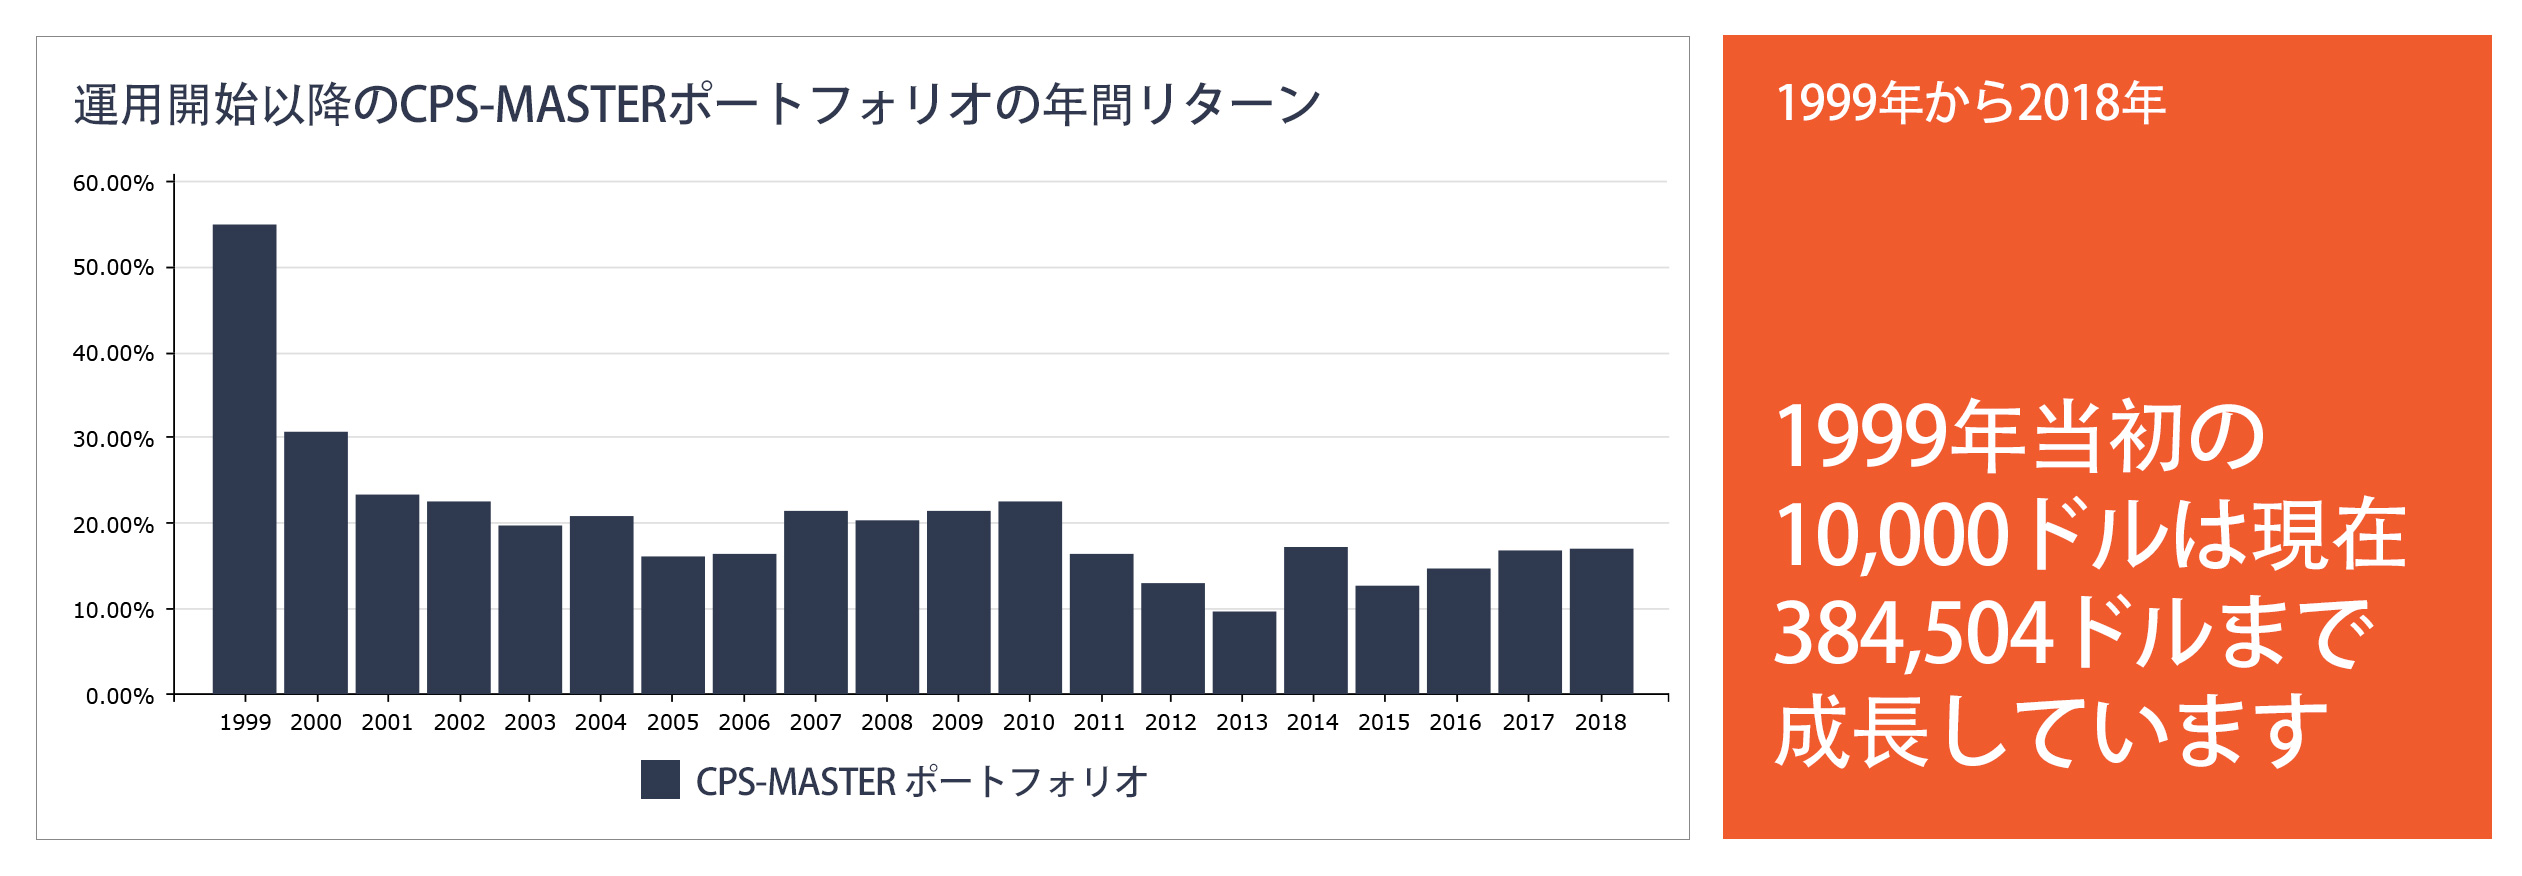 cps-master-no-losing-year-since-inception-2018-japanese